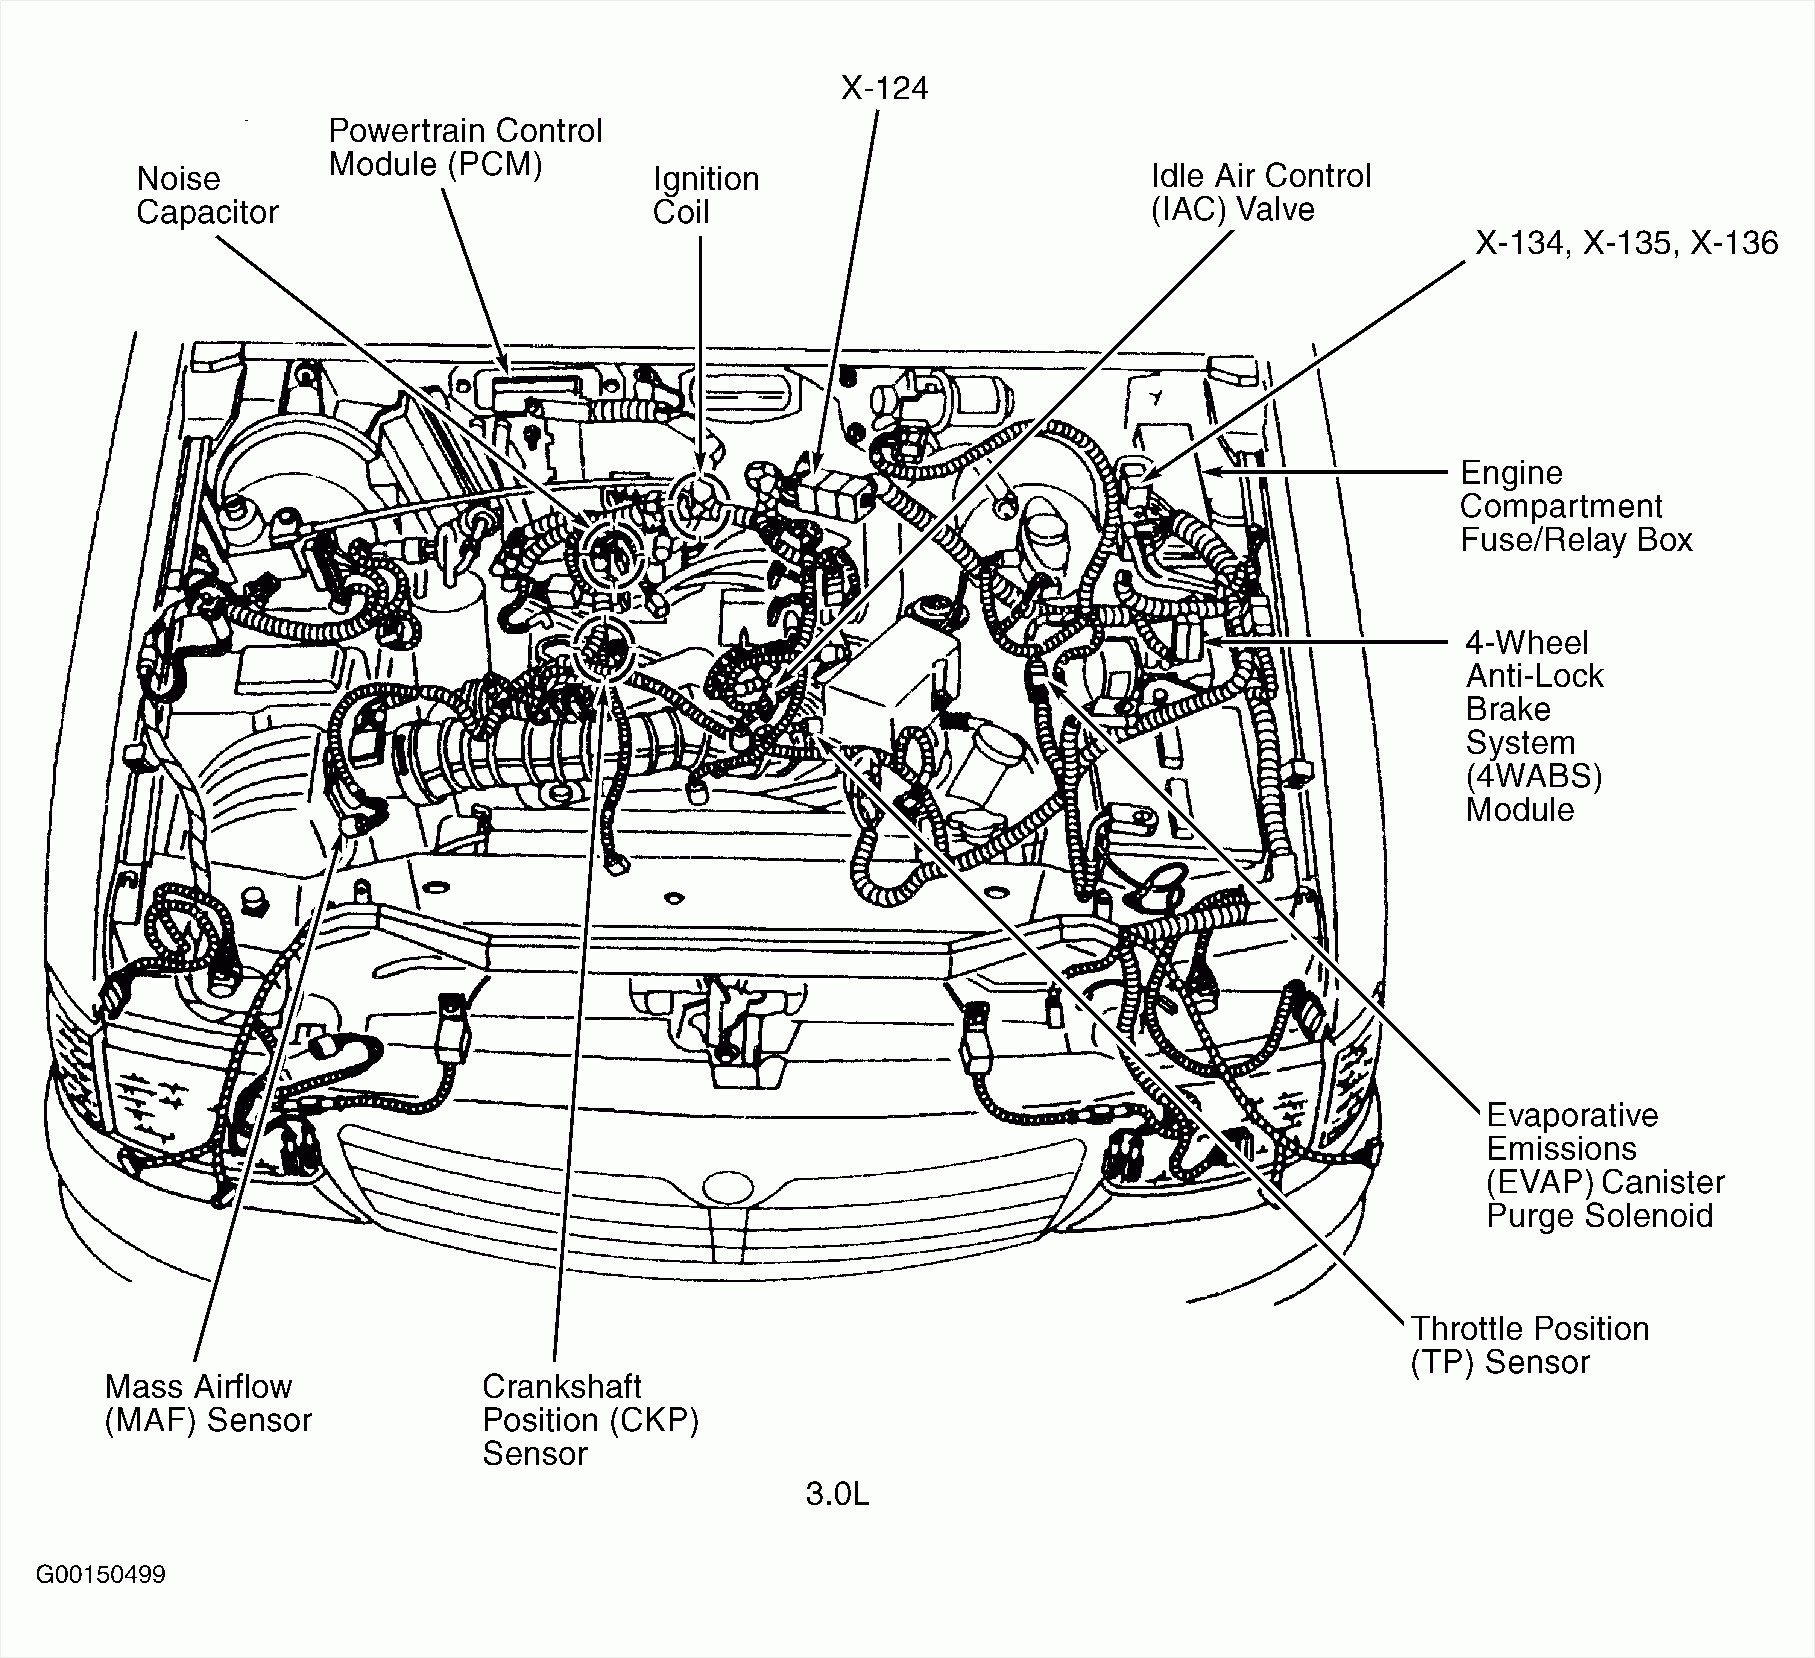 saab 2 0t engine diagram wiring diagram b72 0t engine diagram wiring diagram imp saab 2 0t engine diagram